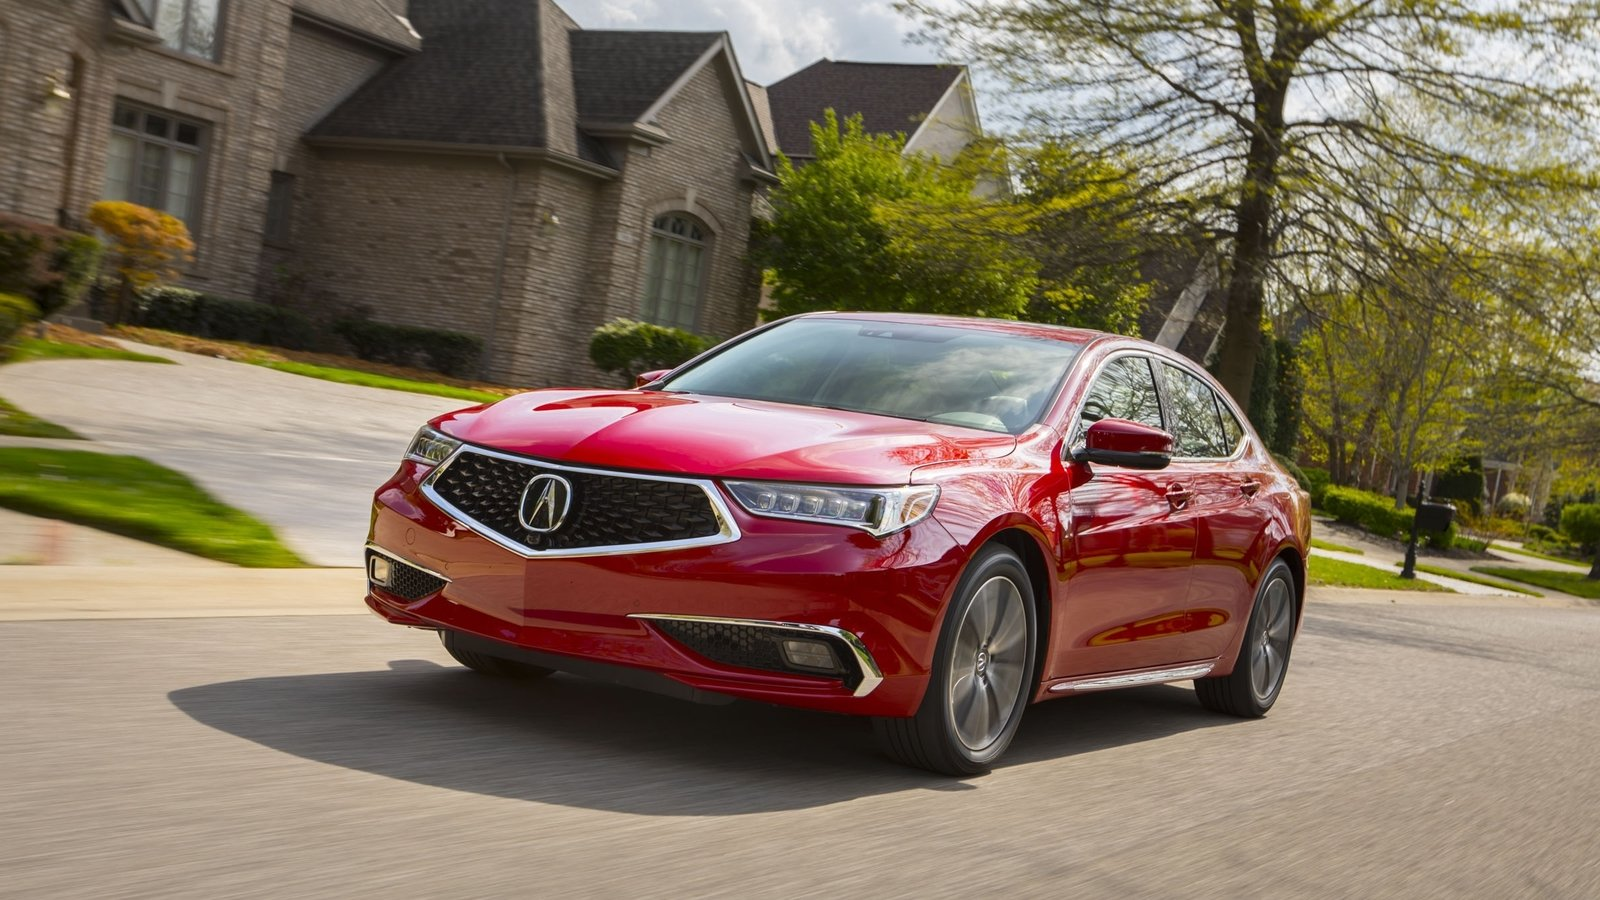 2018 acura tlx review gallery top speed. Black Bedroom Furniture Sets. Home Design Ideas